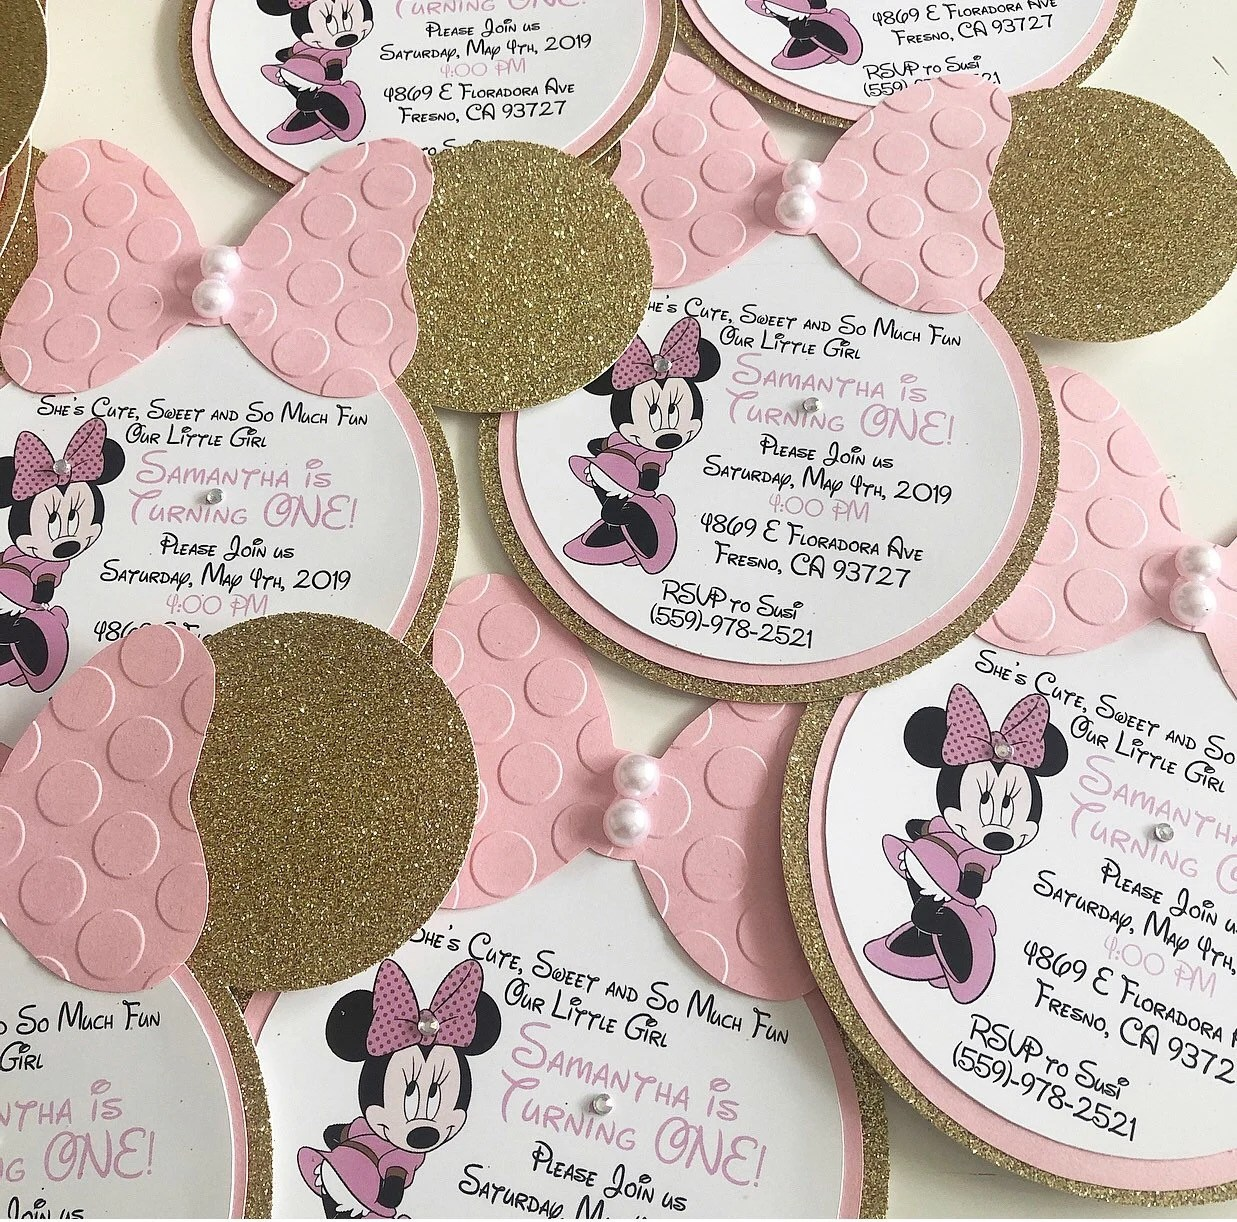 minnie mouse birthday invitation pink and gold minnie mouse party invitation minnie mouse pink and gold birthday invitation